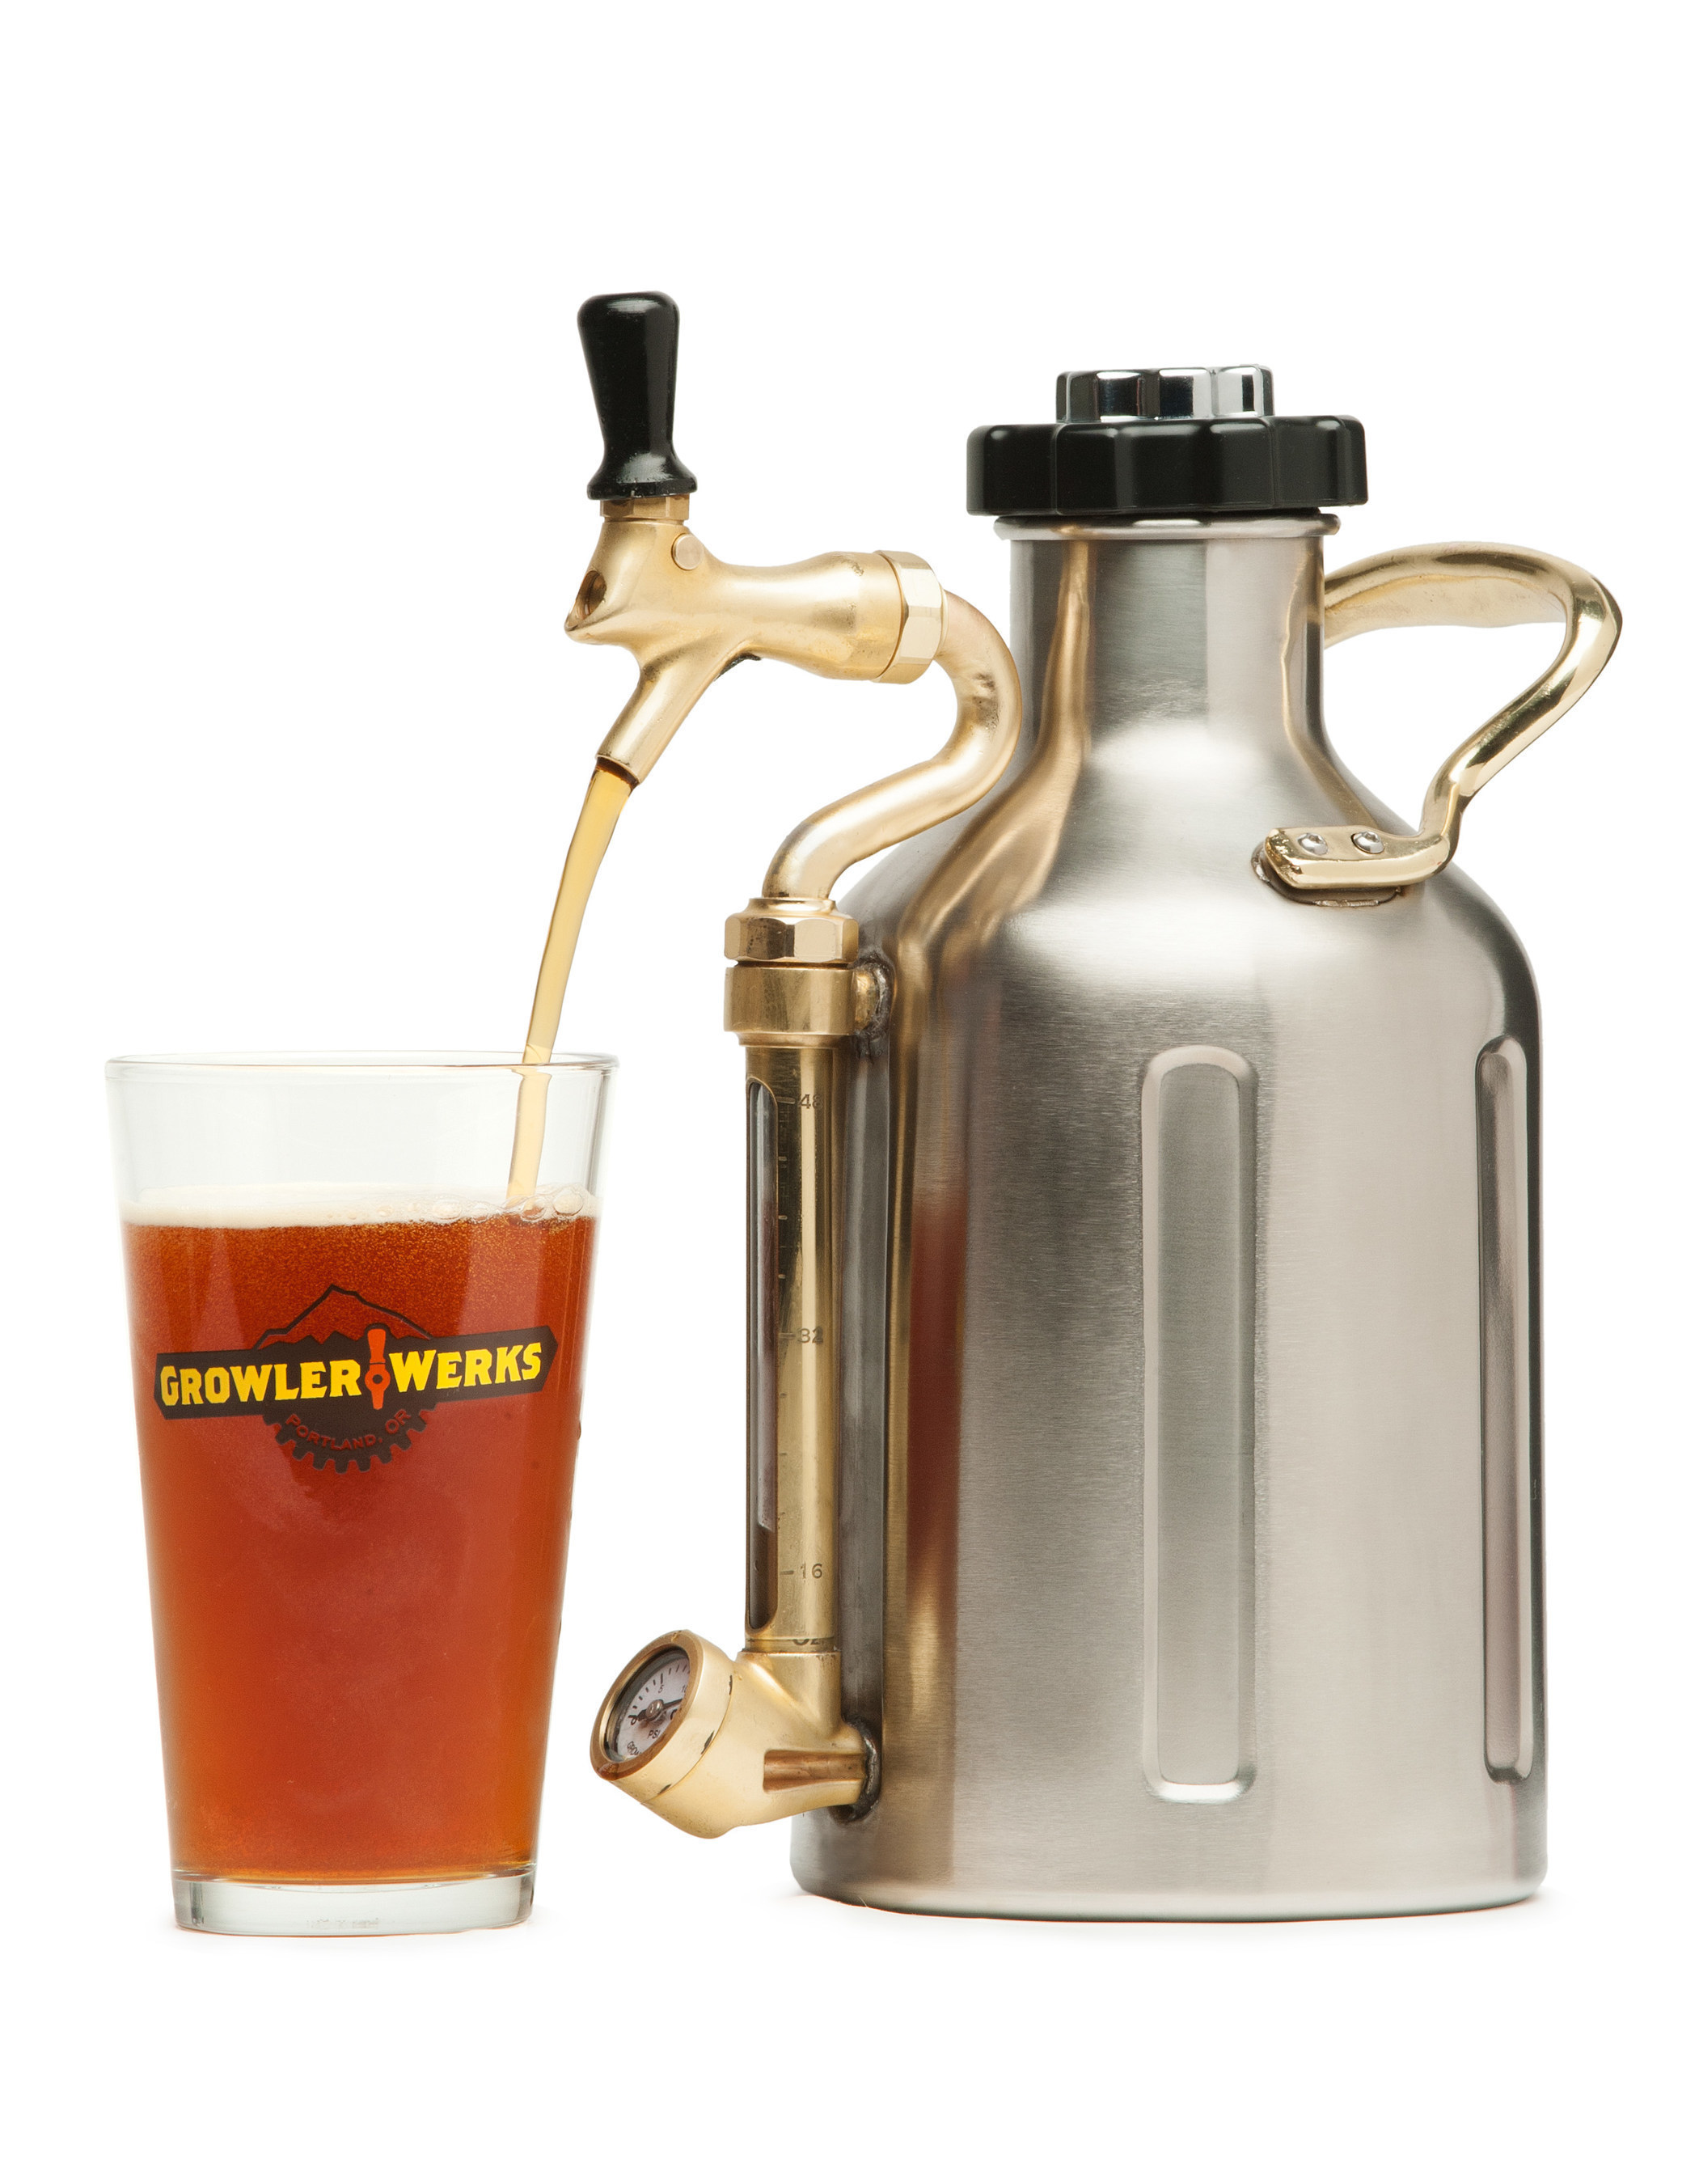 GrowlerWerks' uKeg keeps beer fresh from the first to last pour.